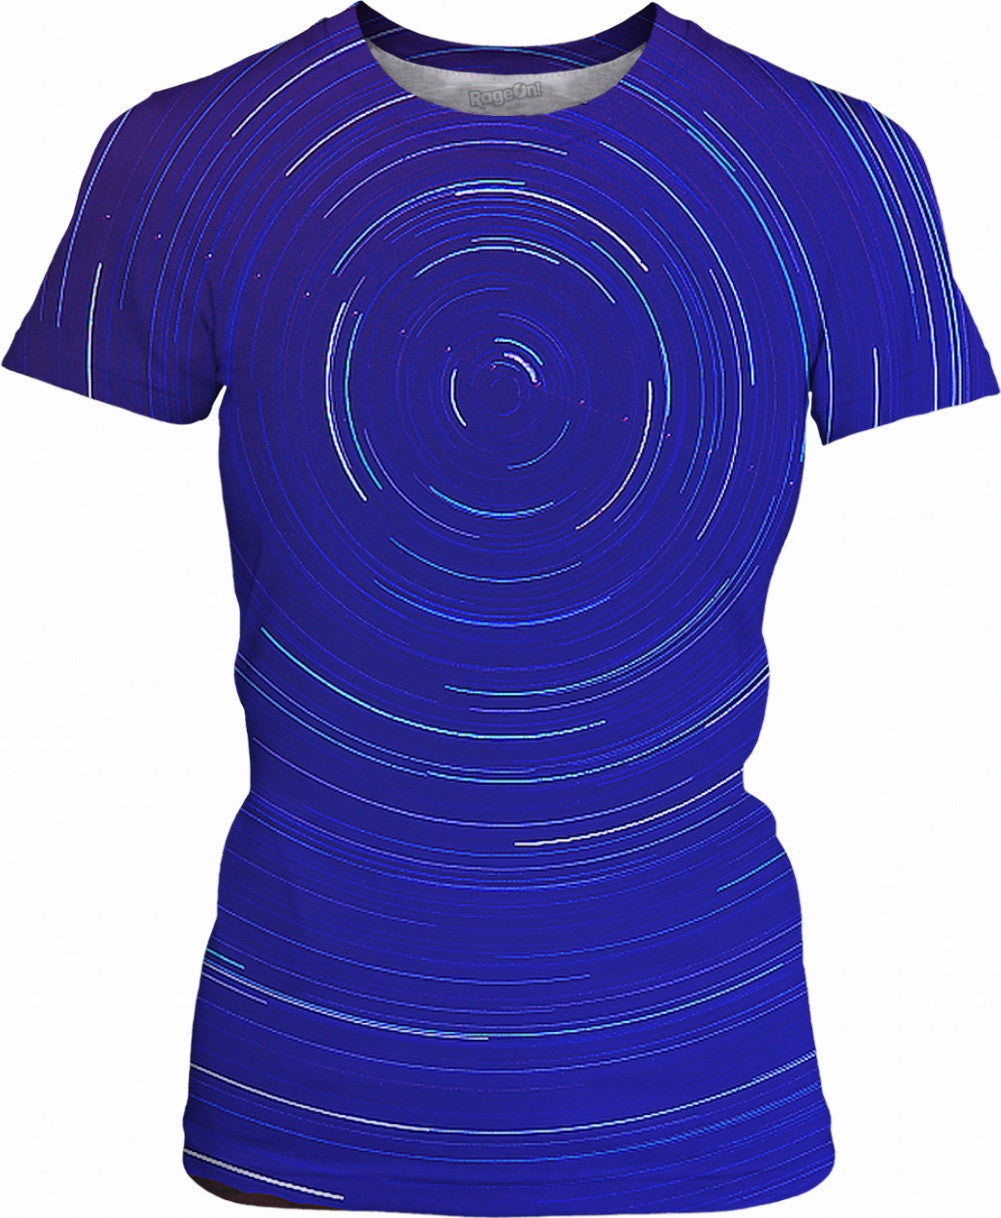 Star Circle Women's T-Shirt